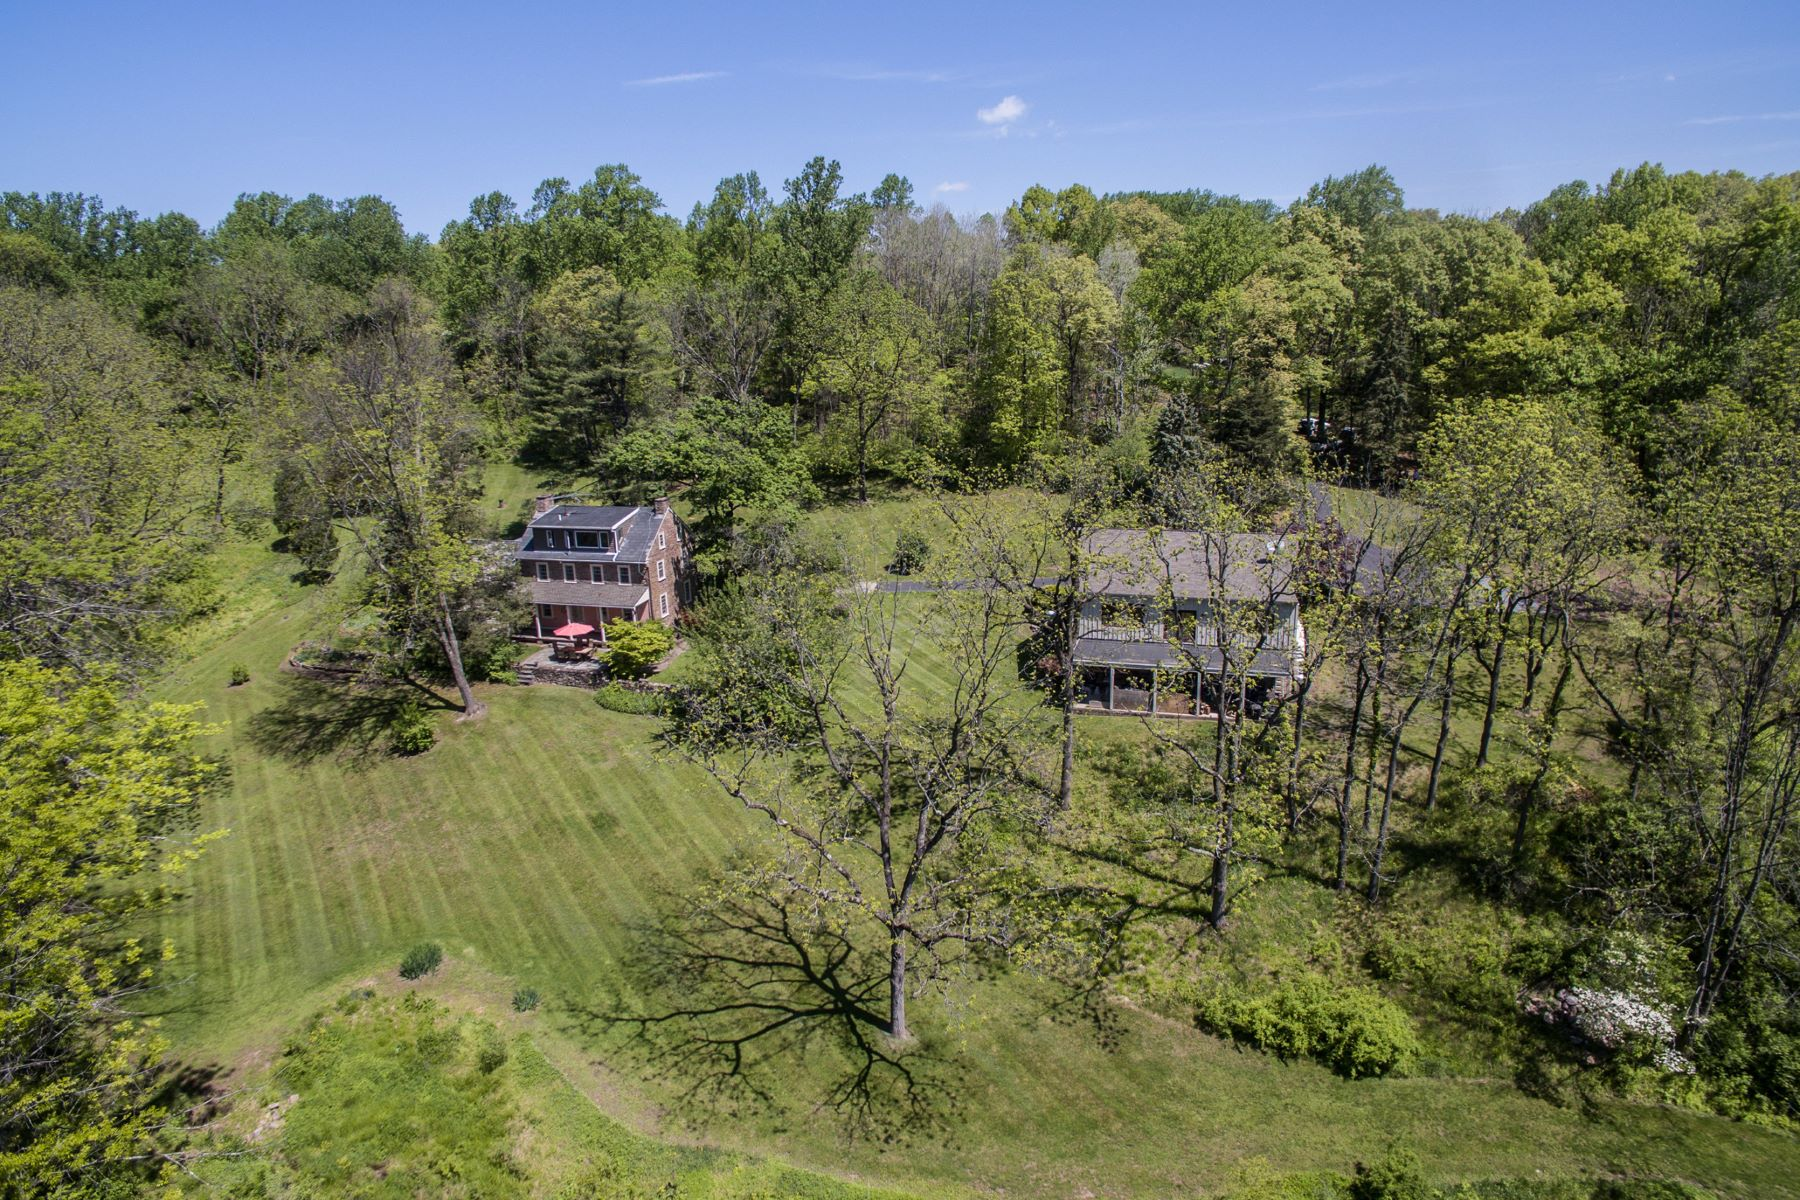 Single Family Home for Sale at Hidden Valley Farm 2415 DEER TRAIL RD, Coopersburg, Pennsylvania 18036 United States